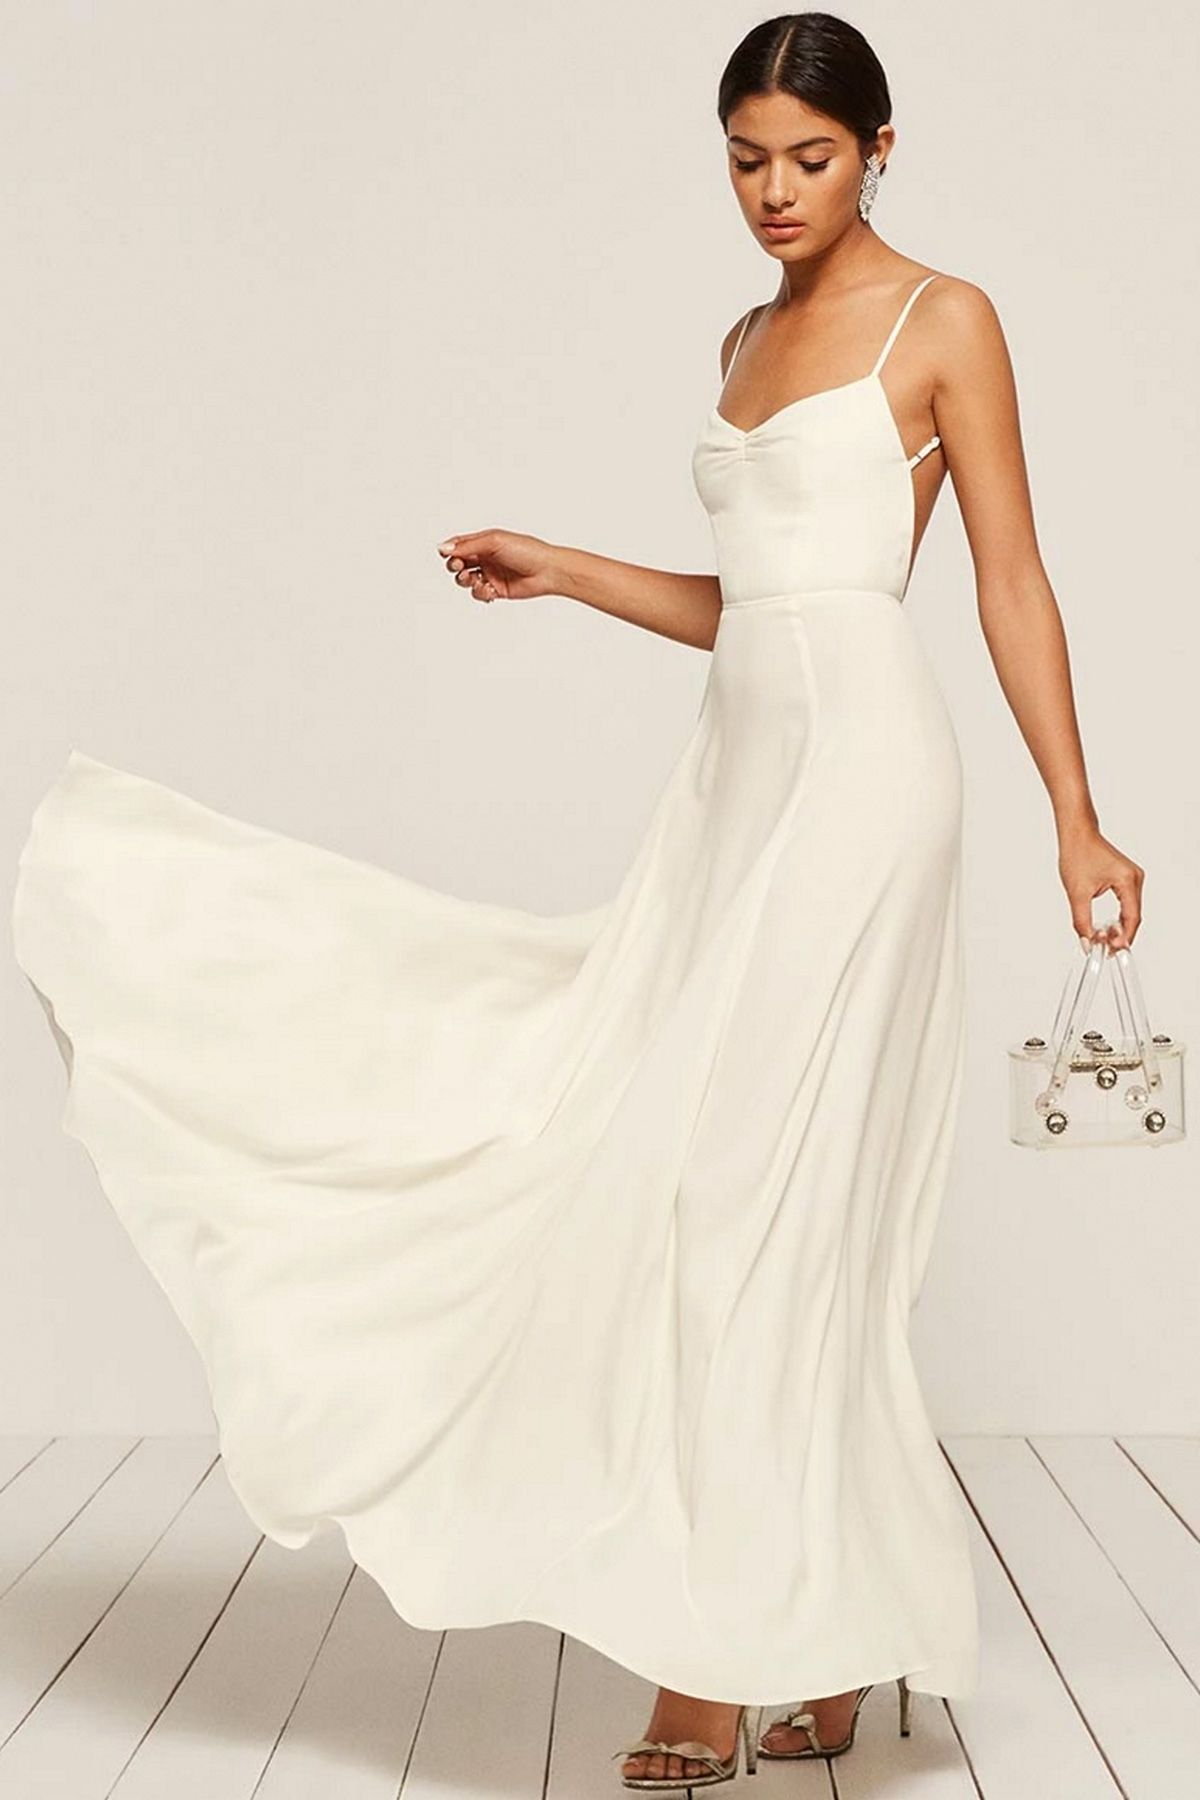 seriously cool under wedding dresses in designs